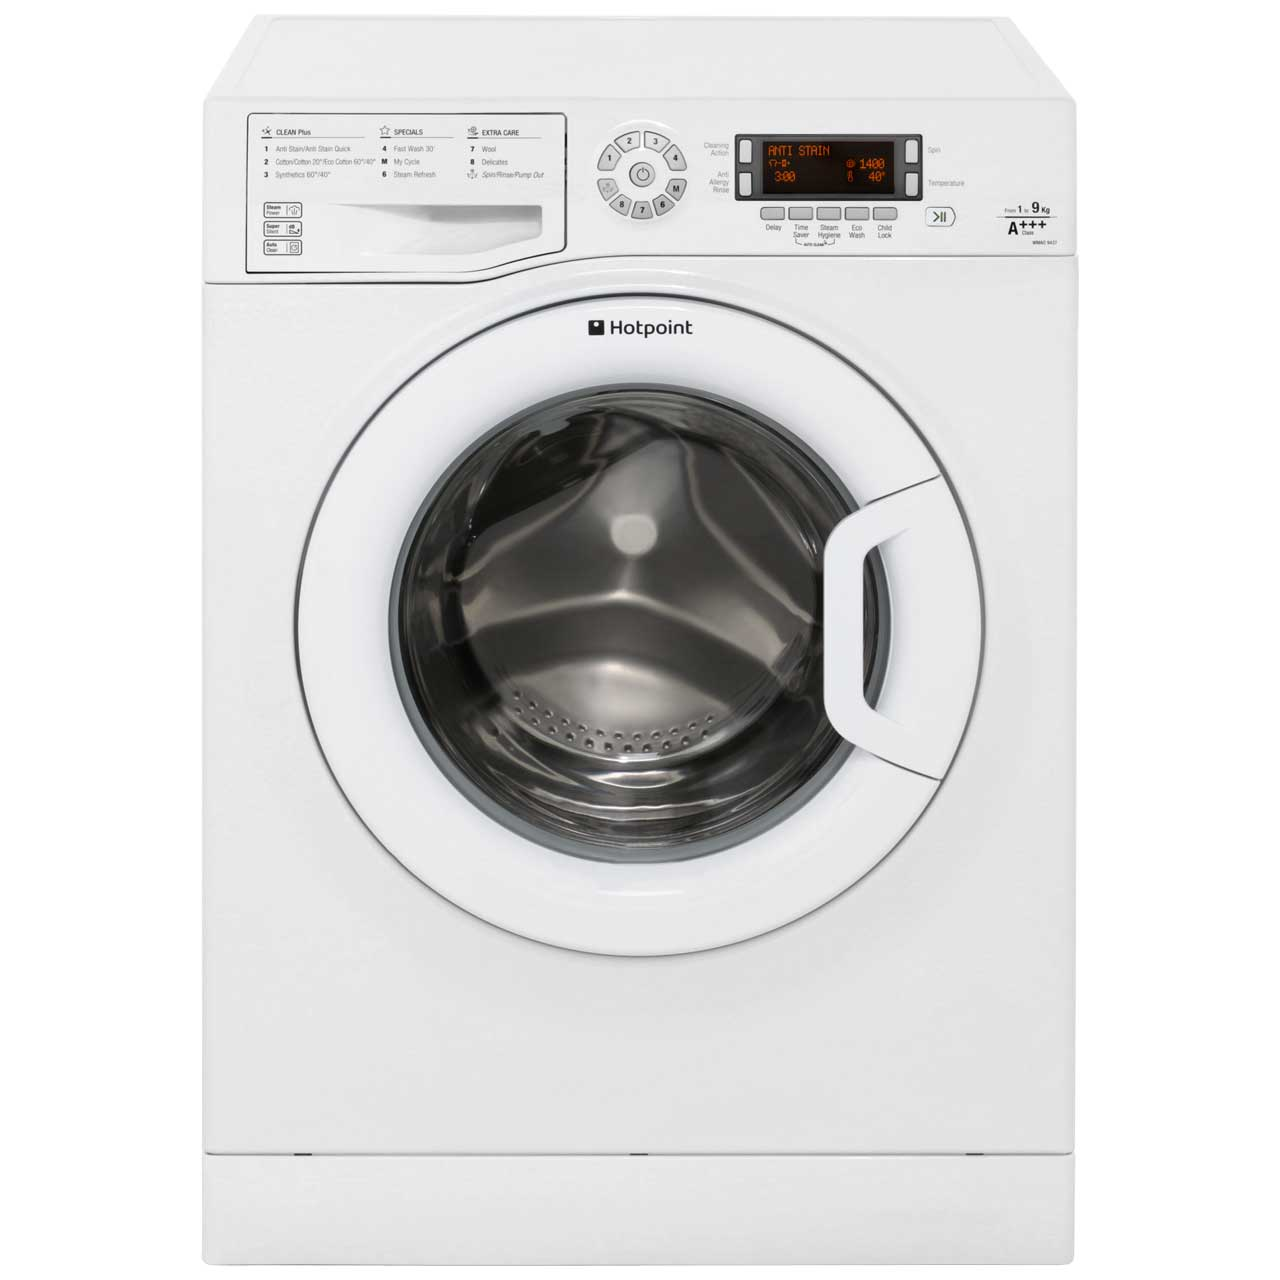 Hotpoint WMAO9437P 9Kg Washing Machine with 1400 rpm - White